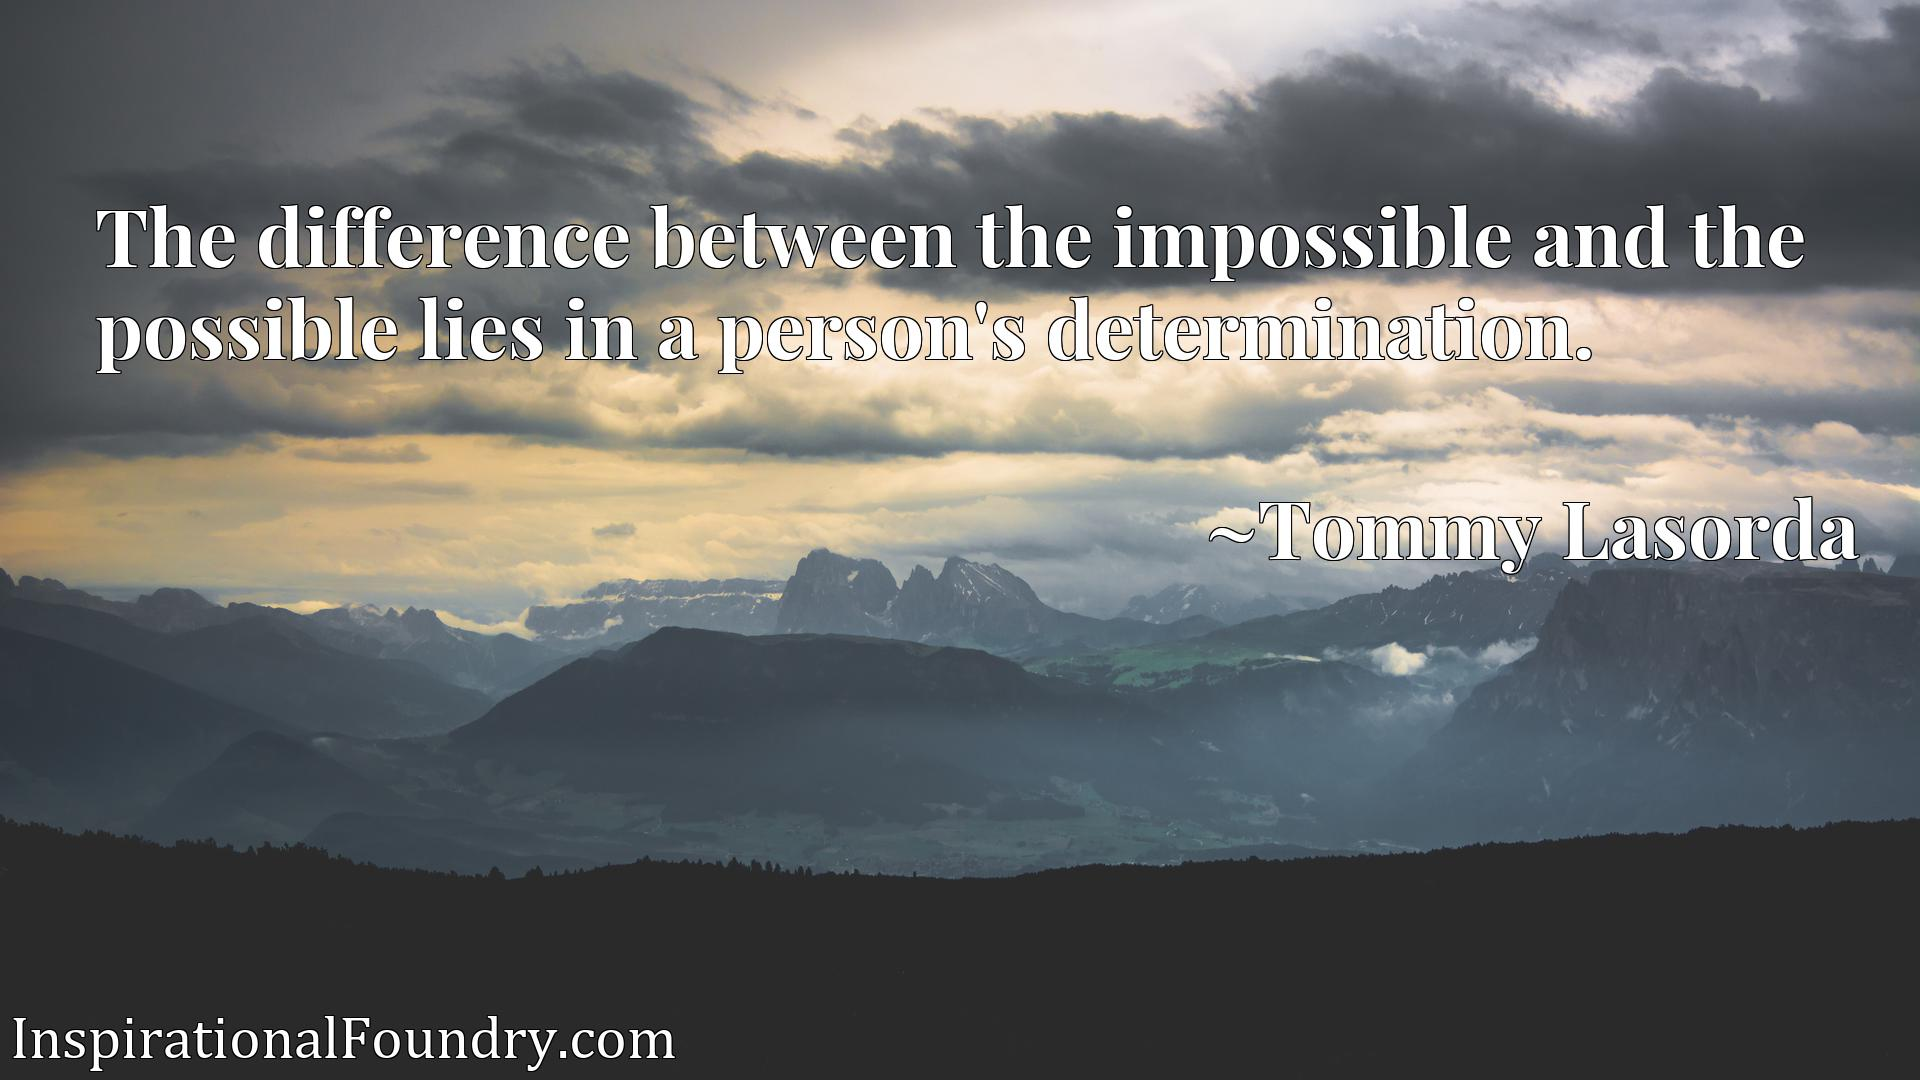 Quote Picture :The difference between the impossible and the possible lies in a person's determination.